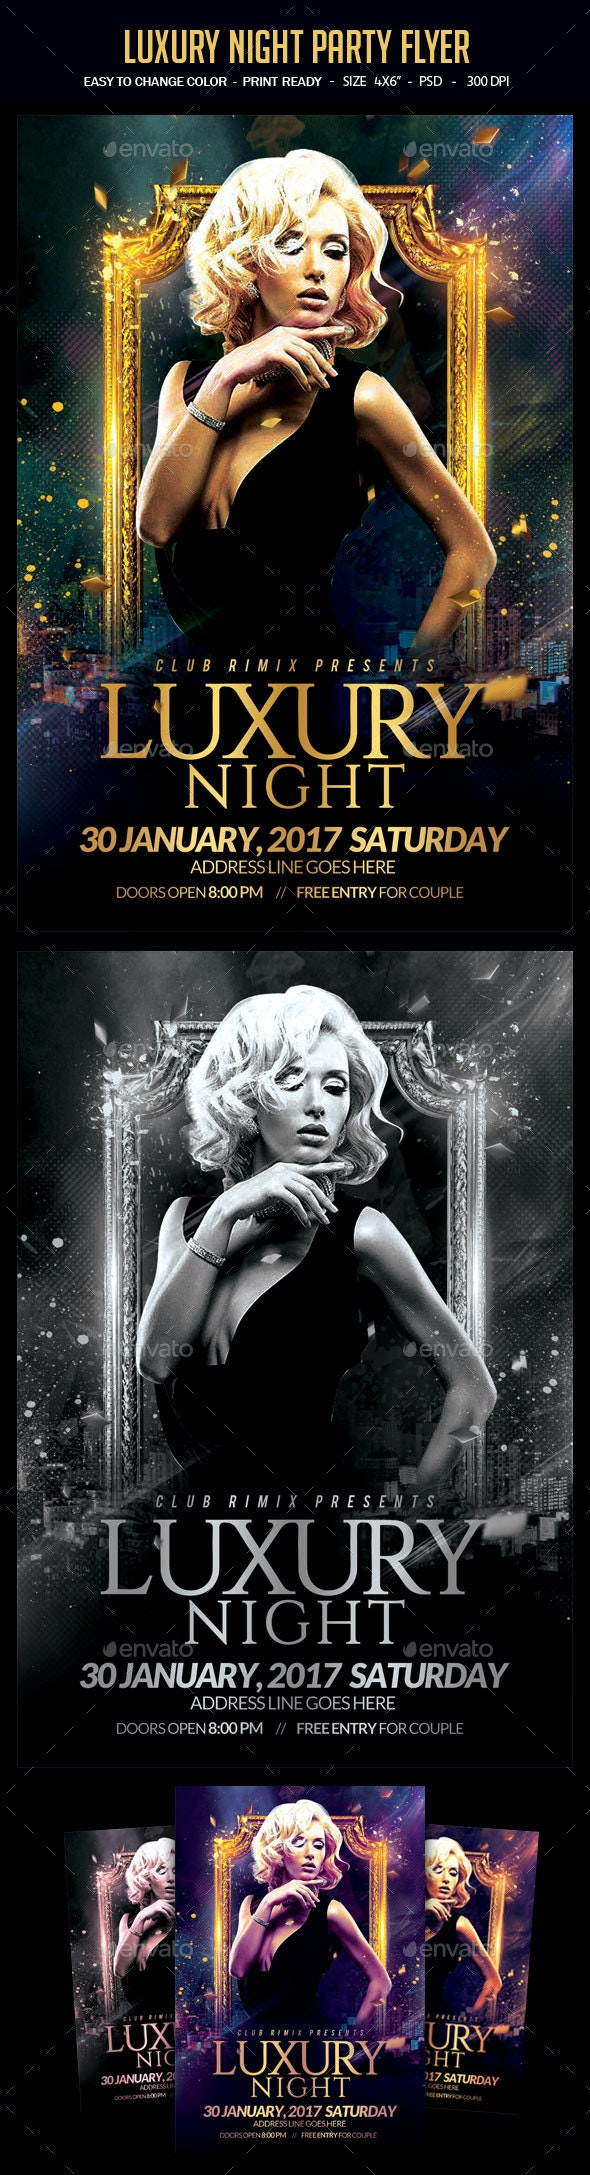 Luxury Night Party Flyer - Clubs & Parties Events